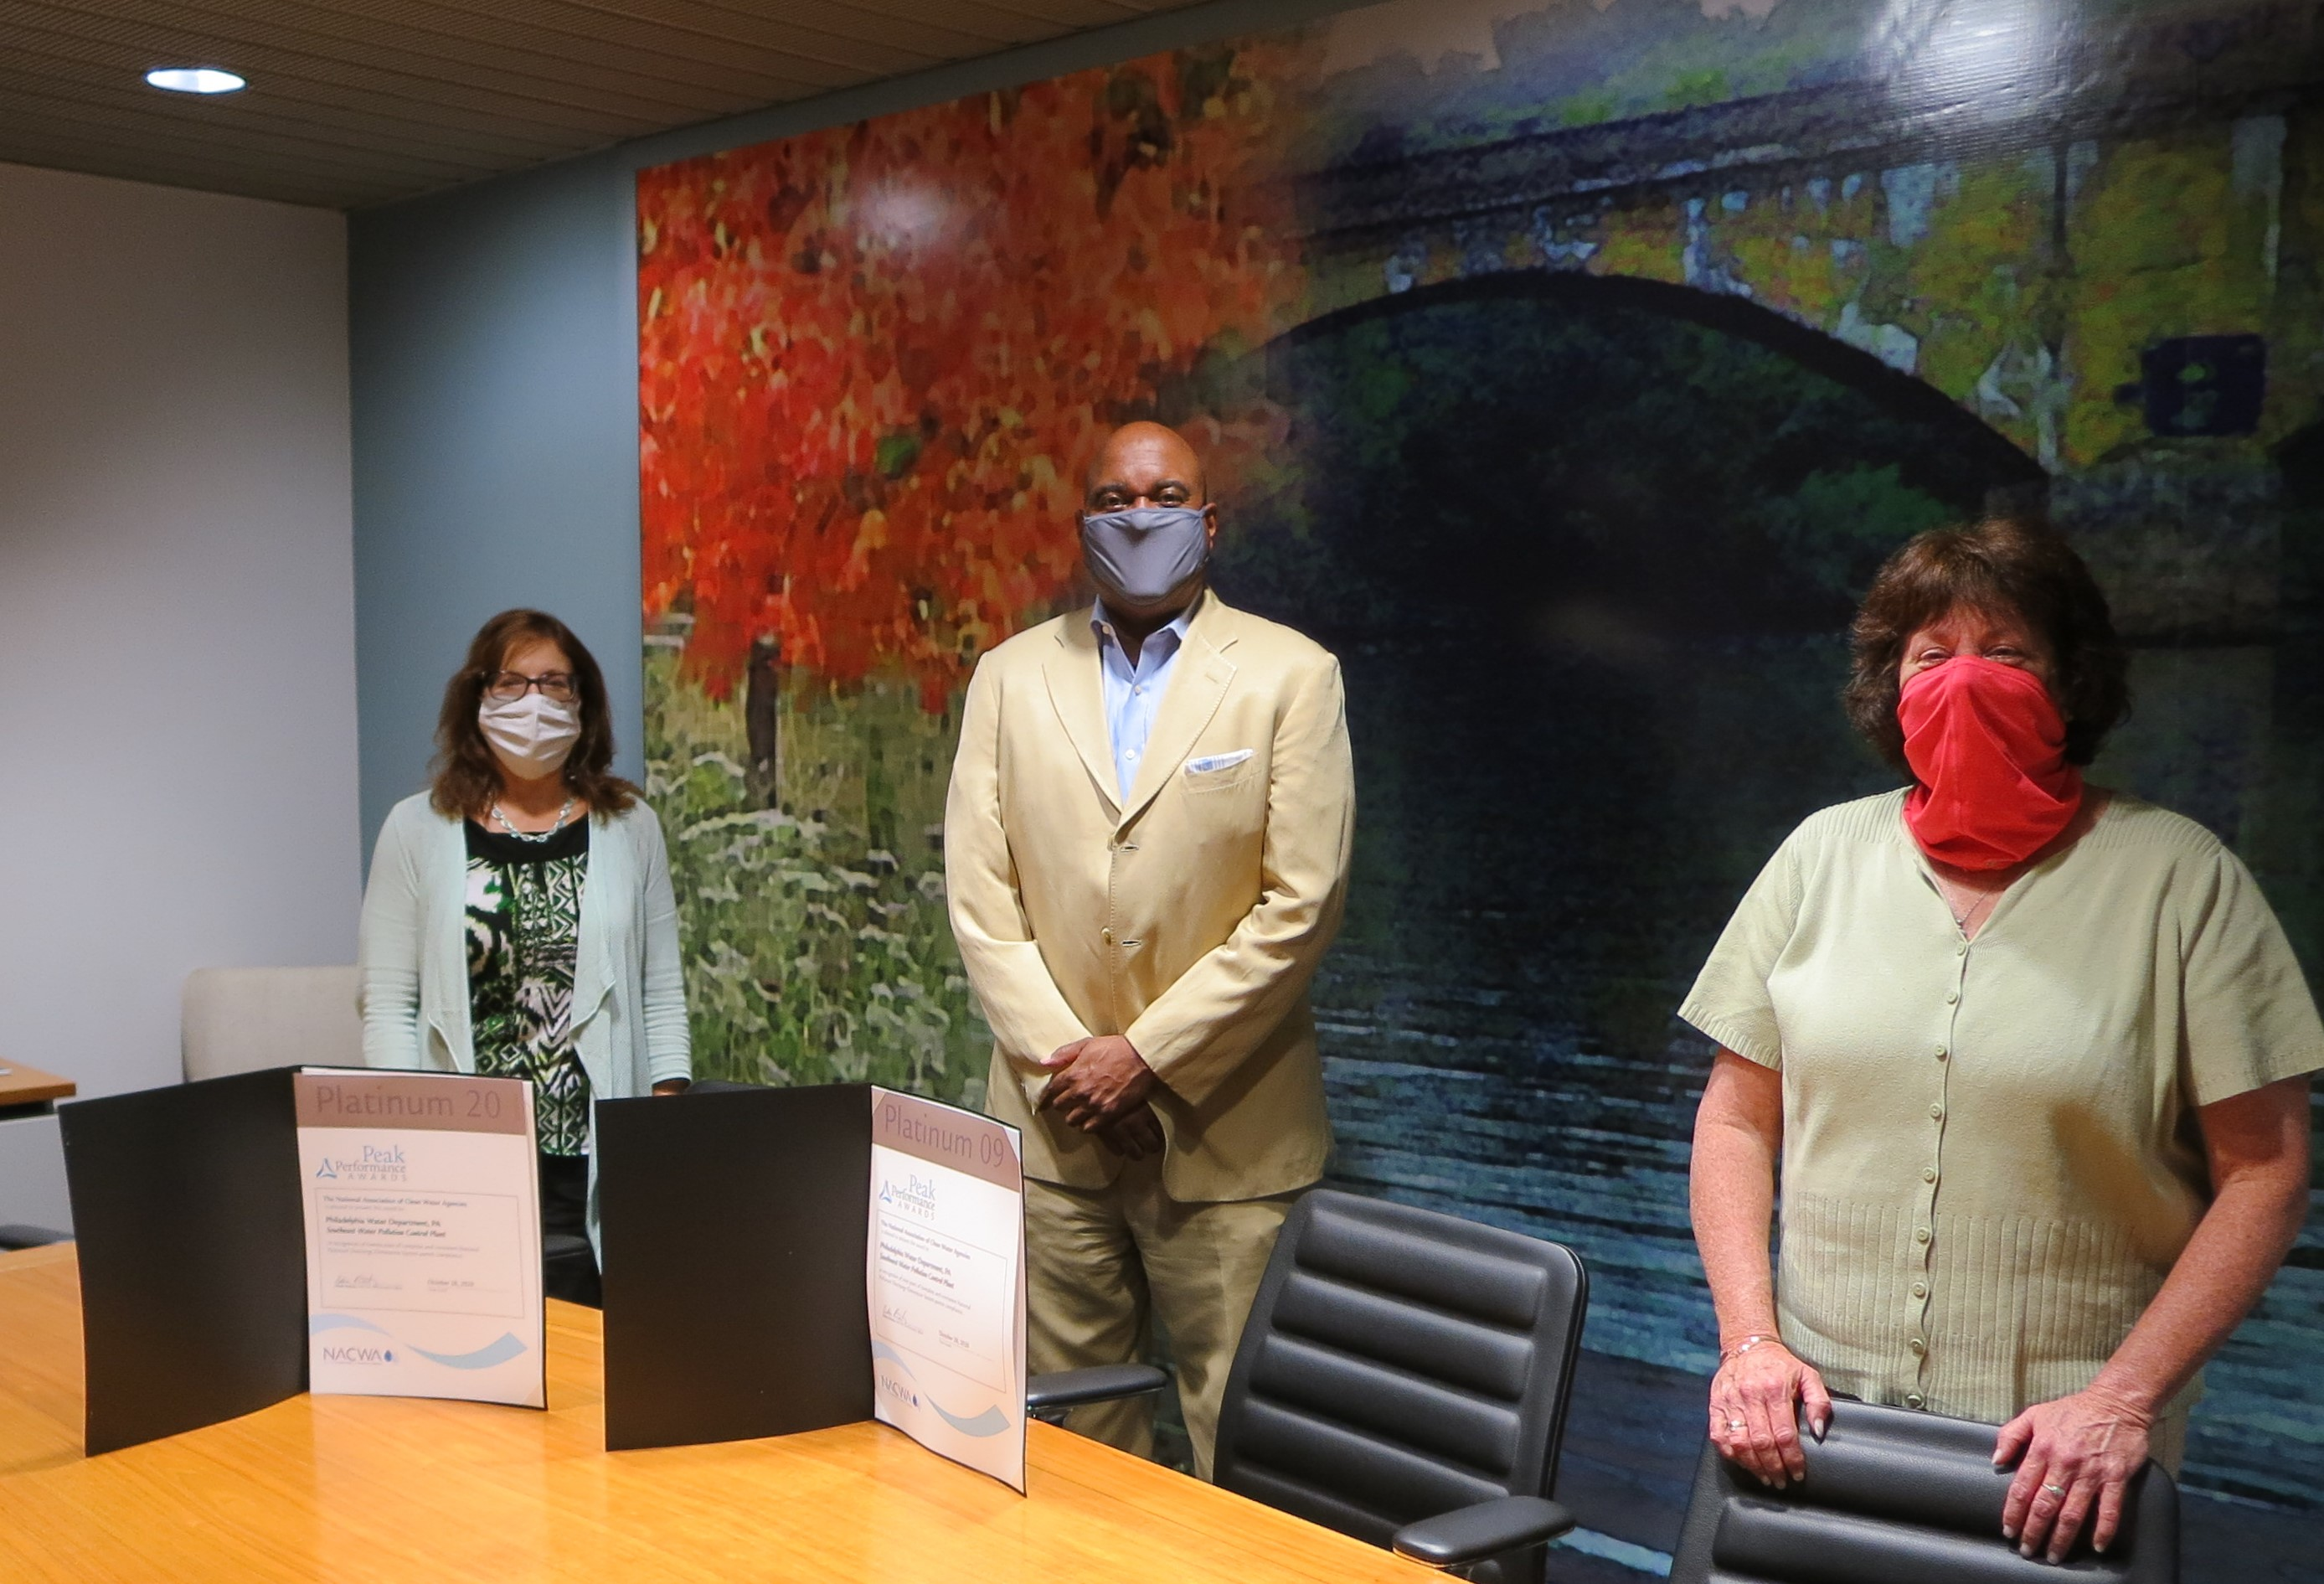 Mary Ellen Senss, Commissioner Hayman, and Donna Schwartz stand spaced out behind a conference table, wearing masks. The award certificates are propped up on the table in front of them.